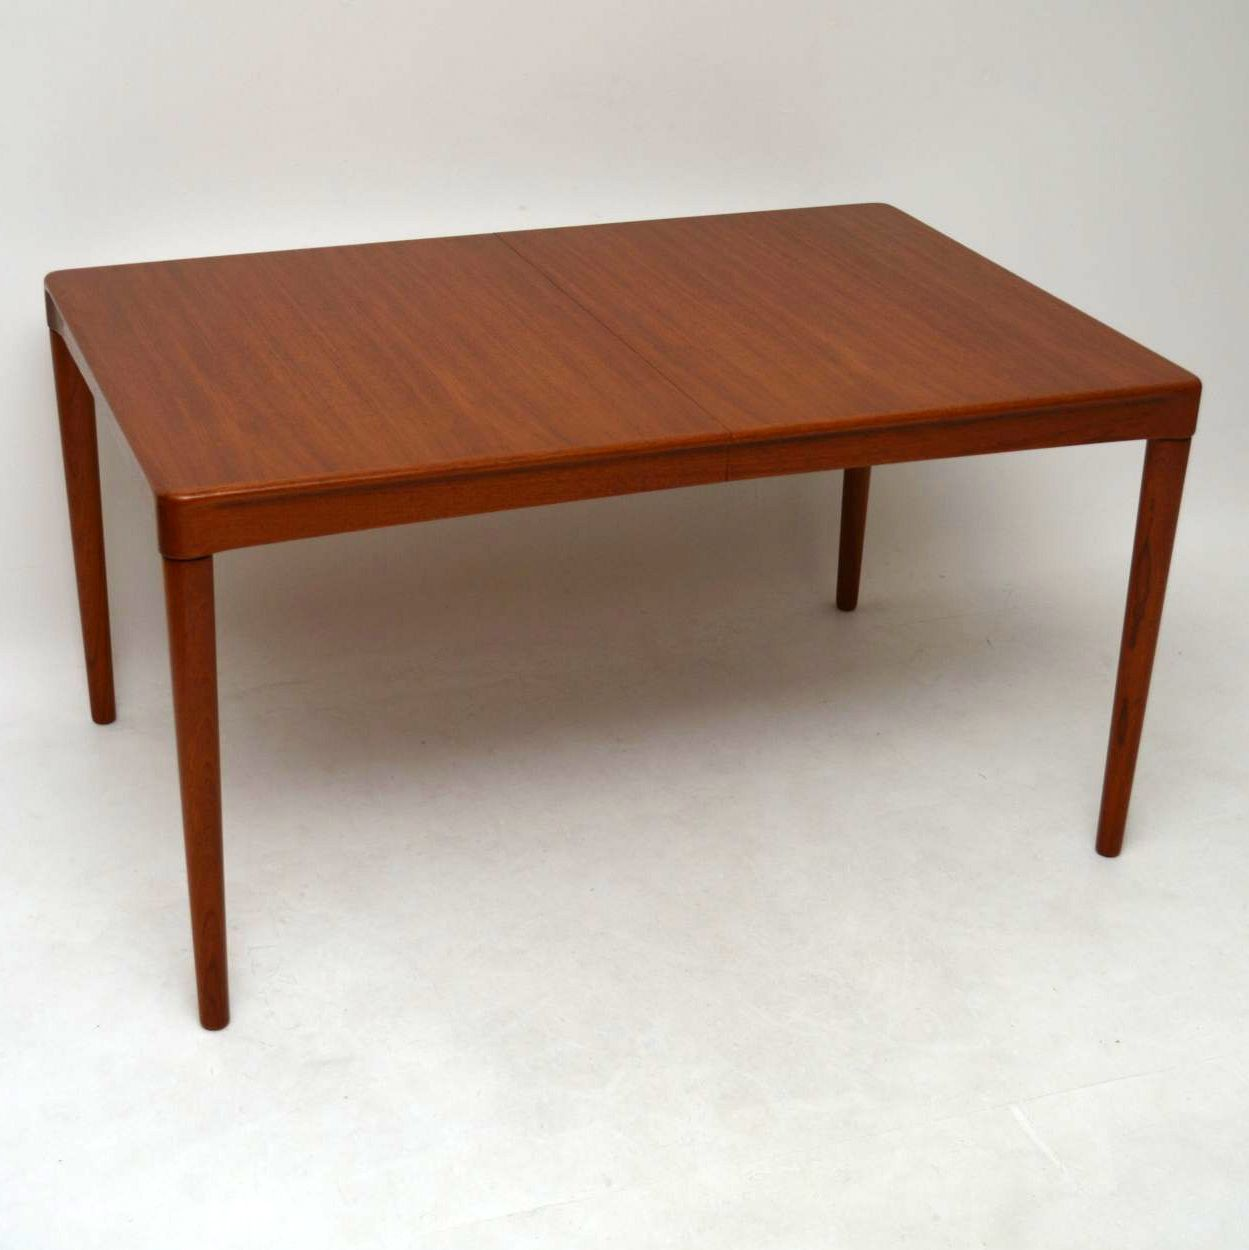 Danish Teak Retro Dining Table by H.W Klein for Bramin Vintage 1970's